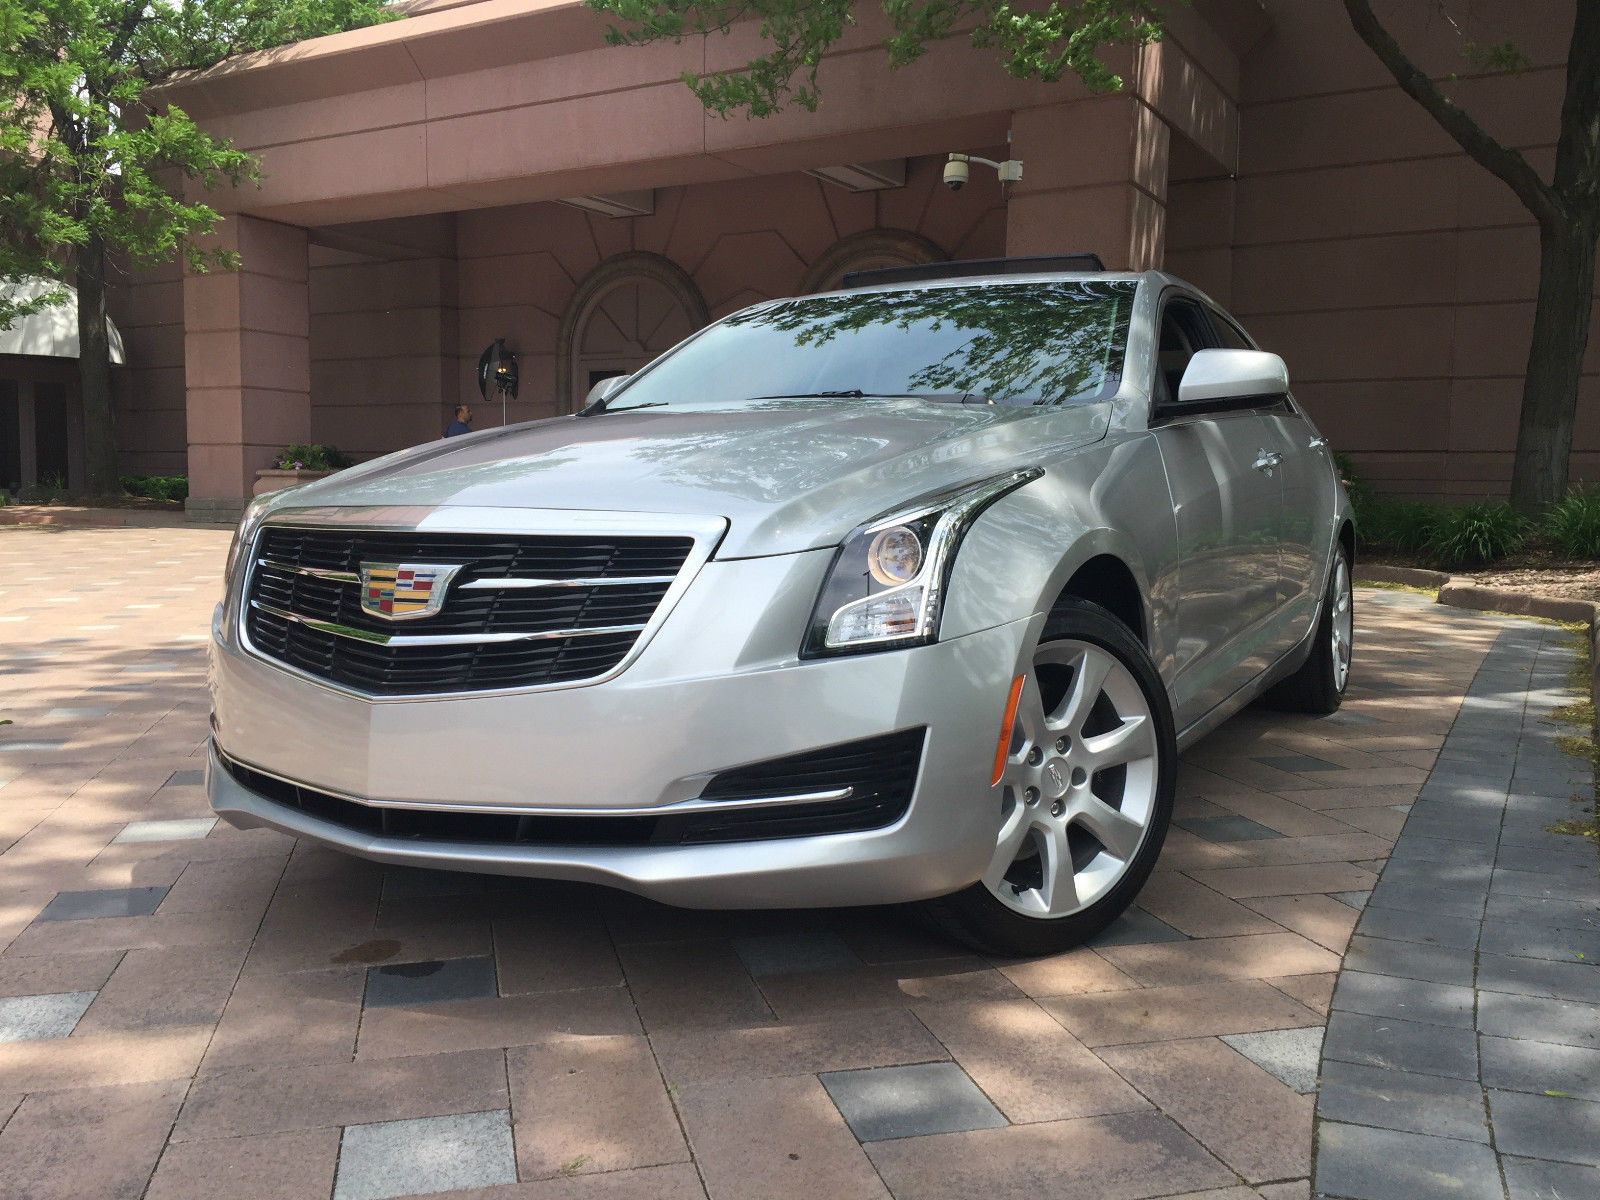 2015 cadillac ats heated leather seats awd moon roof camera for sale. Black Bedroom Furniture Sets. Home Design Ideas